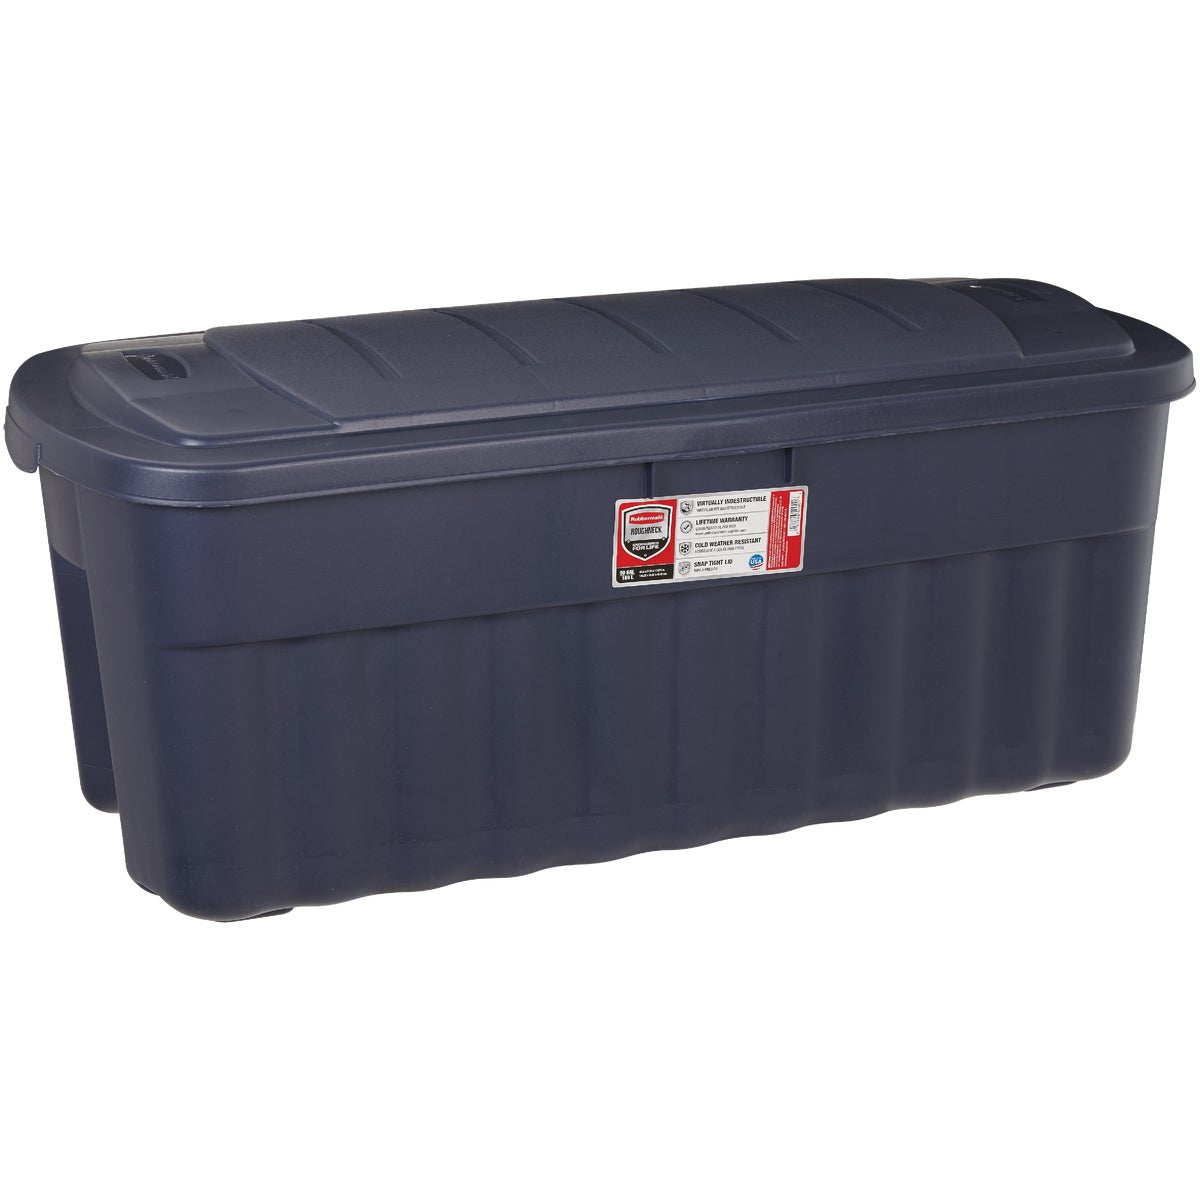 50GAL JUMBO STORAGE TOTE - 2550CPCYLND by Rubbermaid Home